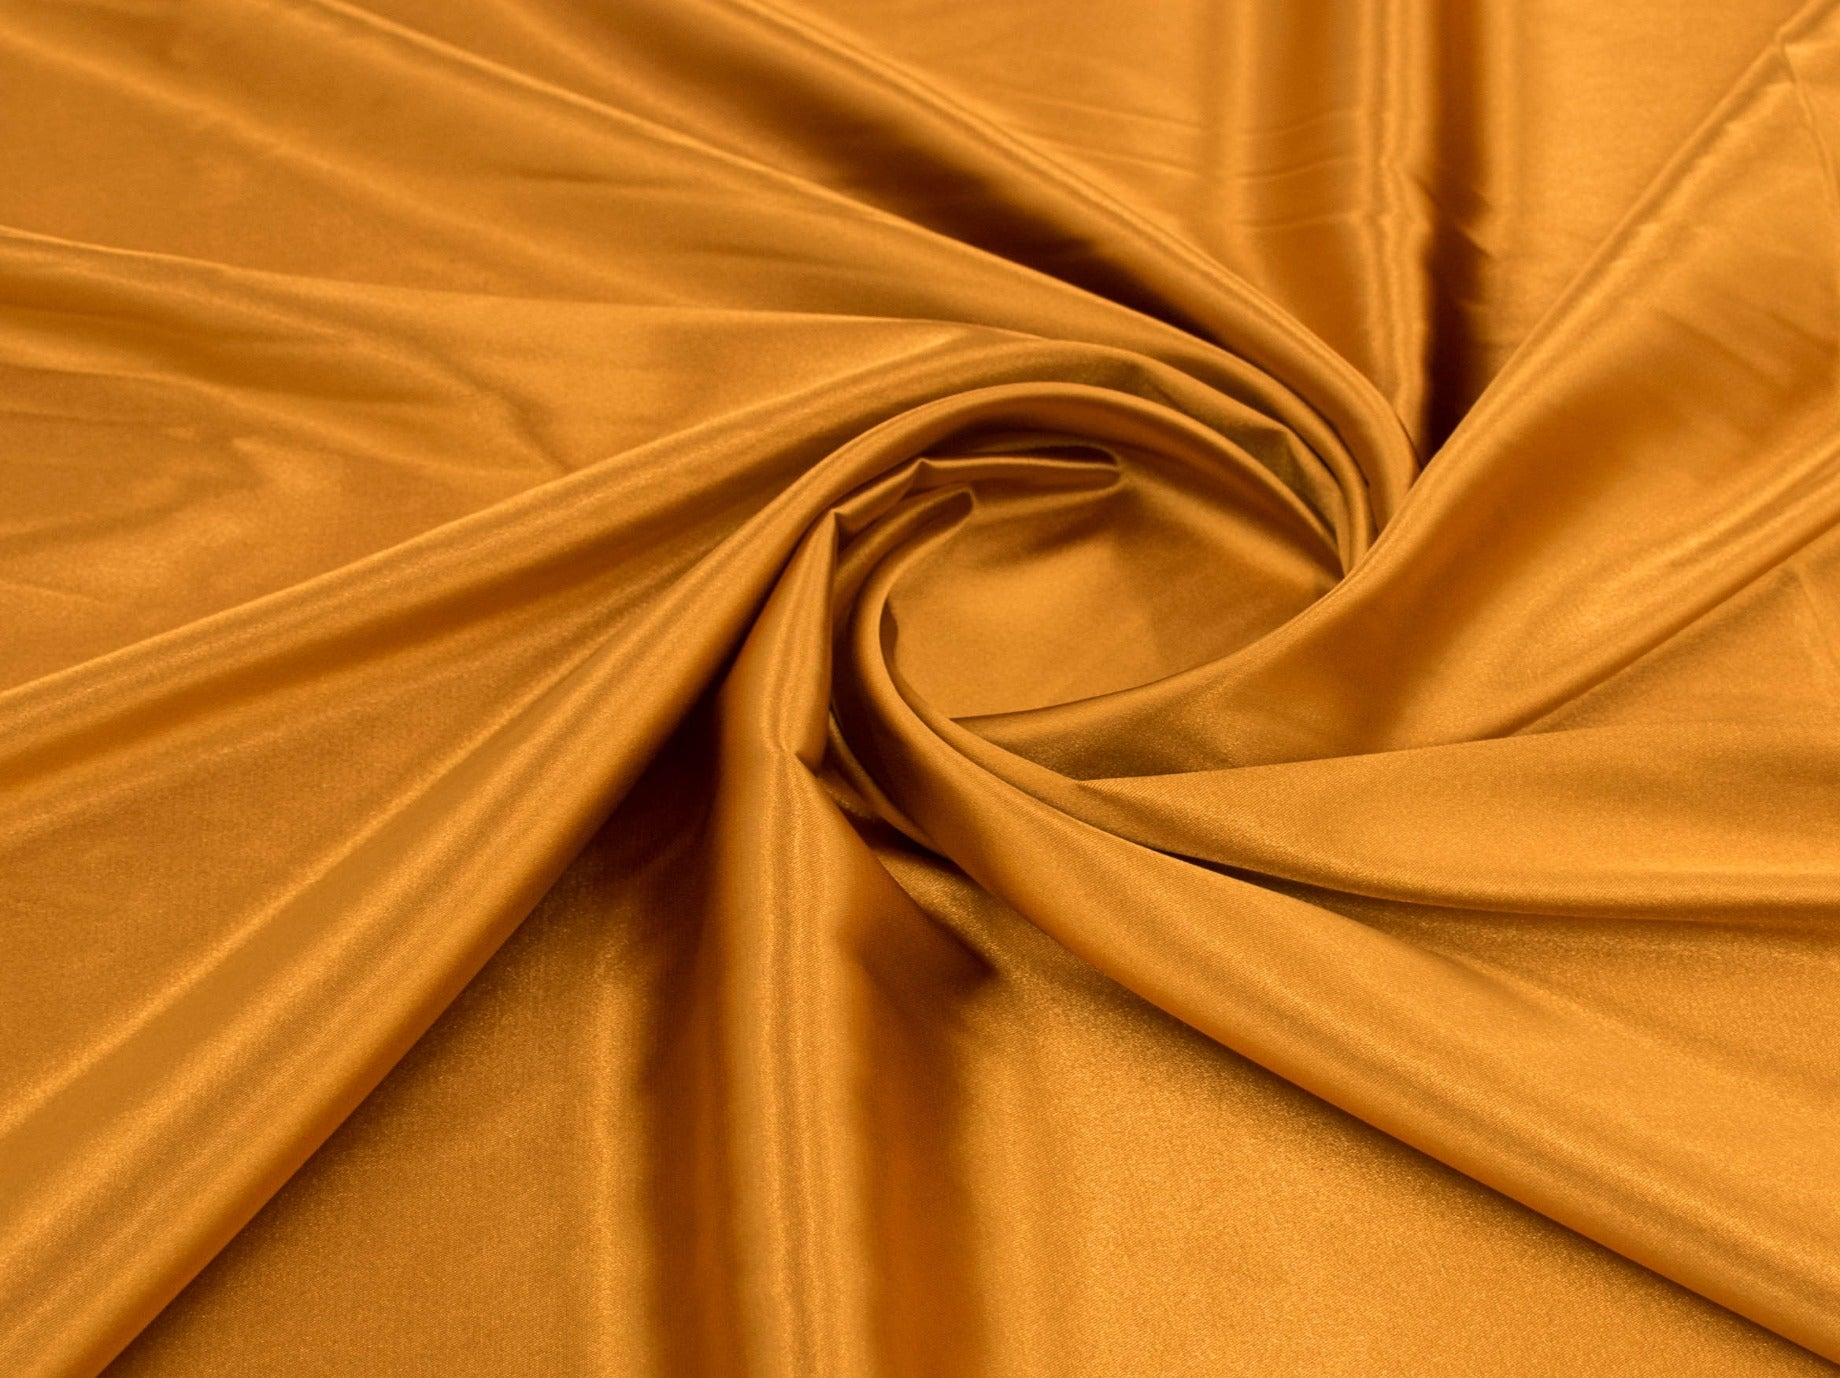 150cm STRETCH SATIN